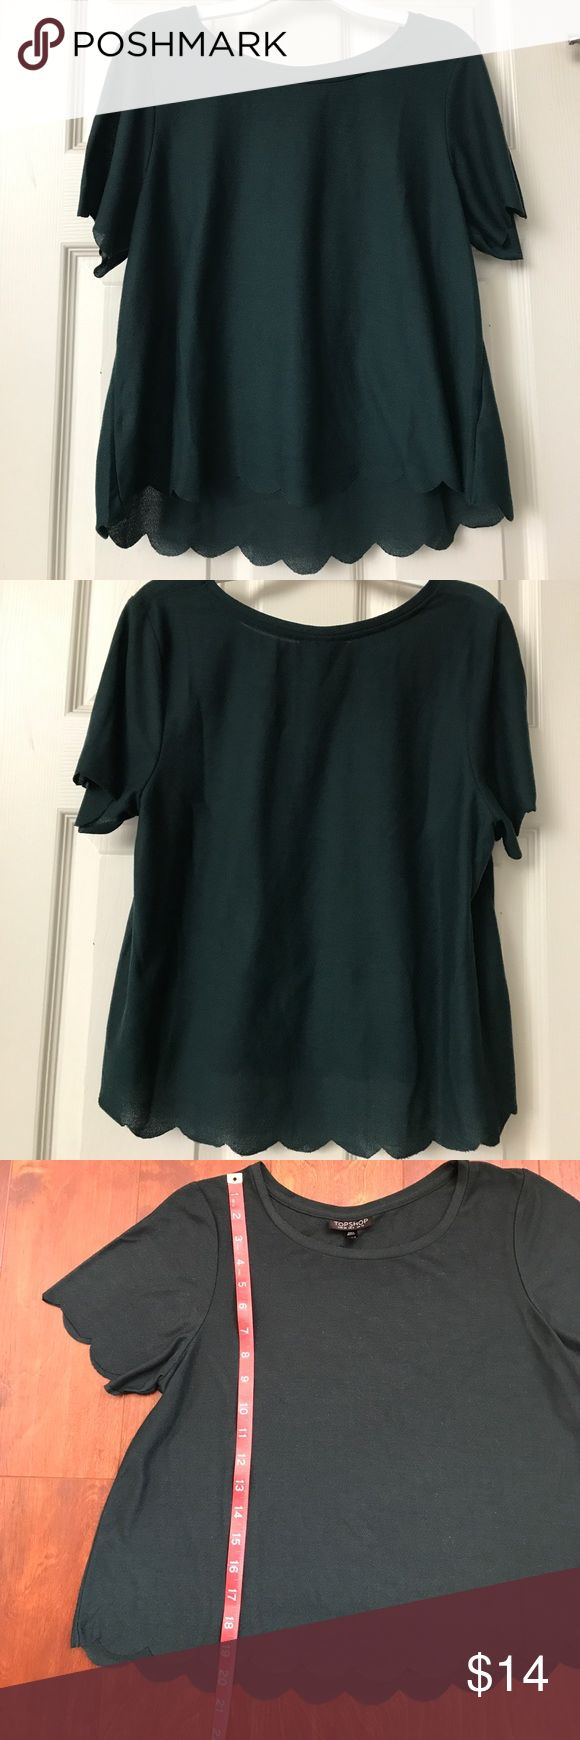 Topshop Top Forest Green Topshop Scallop Frill Tee EUC. Scallops along the sleeves and hem. 100% Polyester Topshop Tops